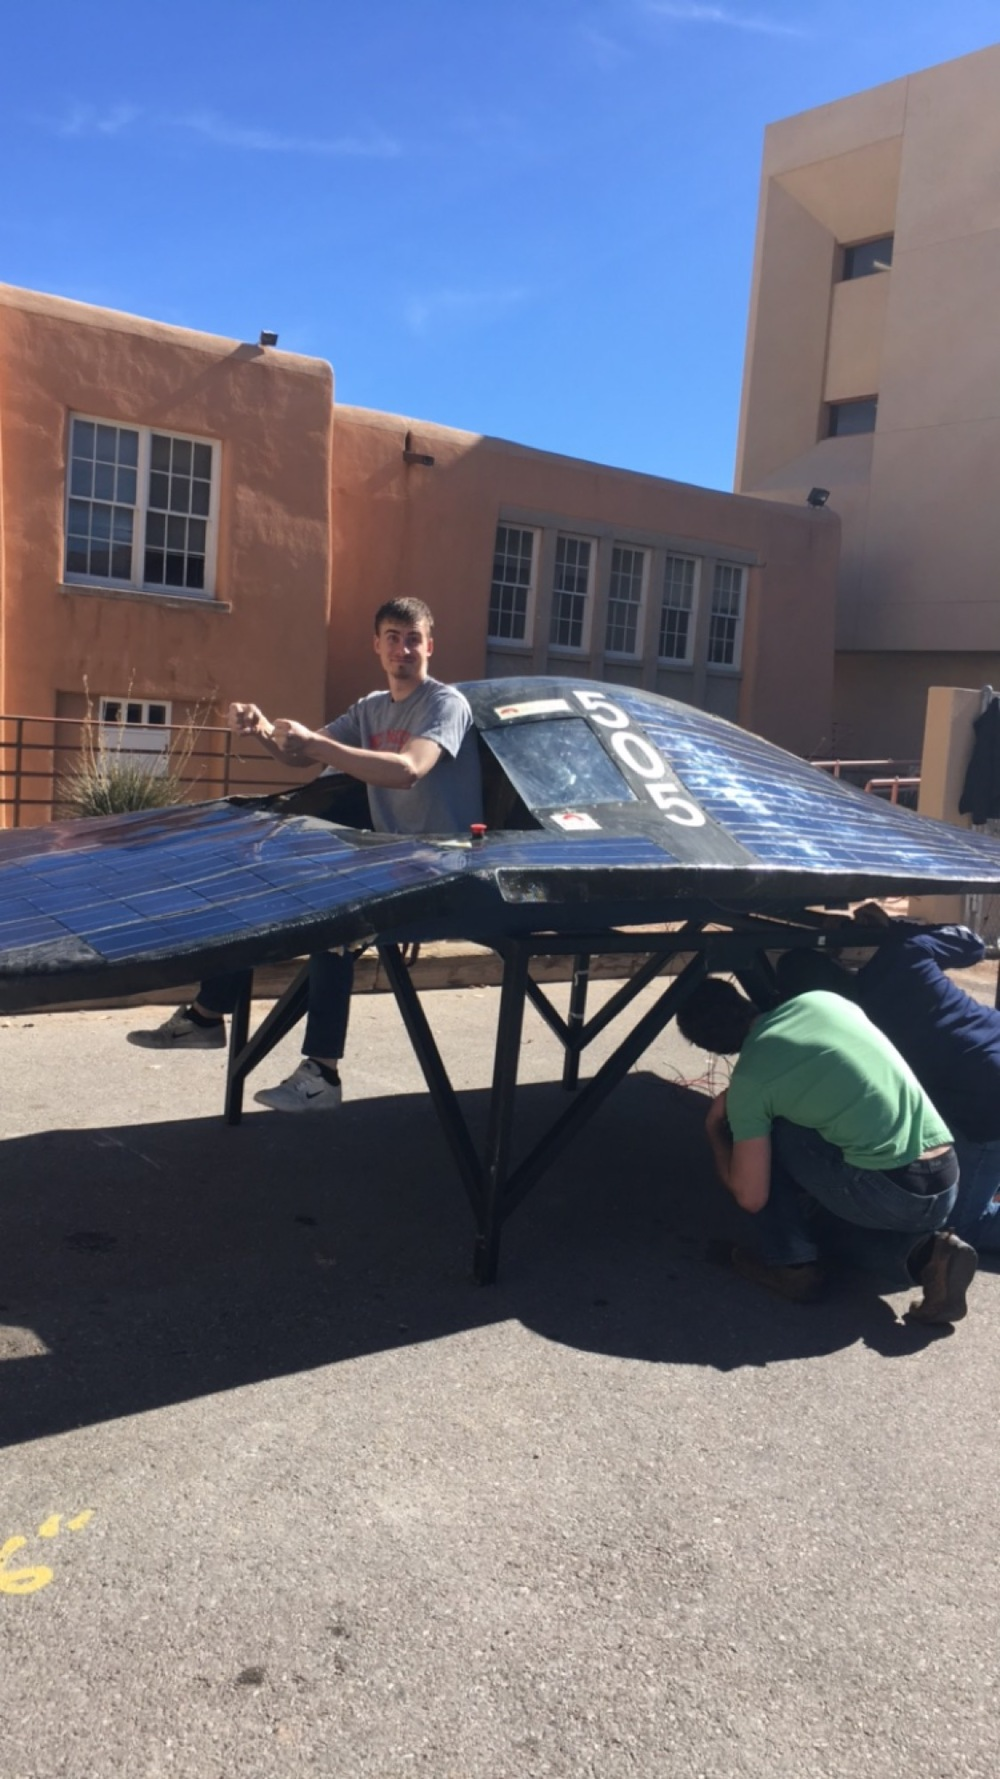 Above: Picture of the Solar Splash Team evaluating condition of solar panels and having a good time